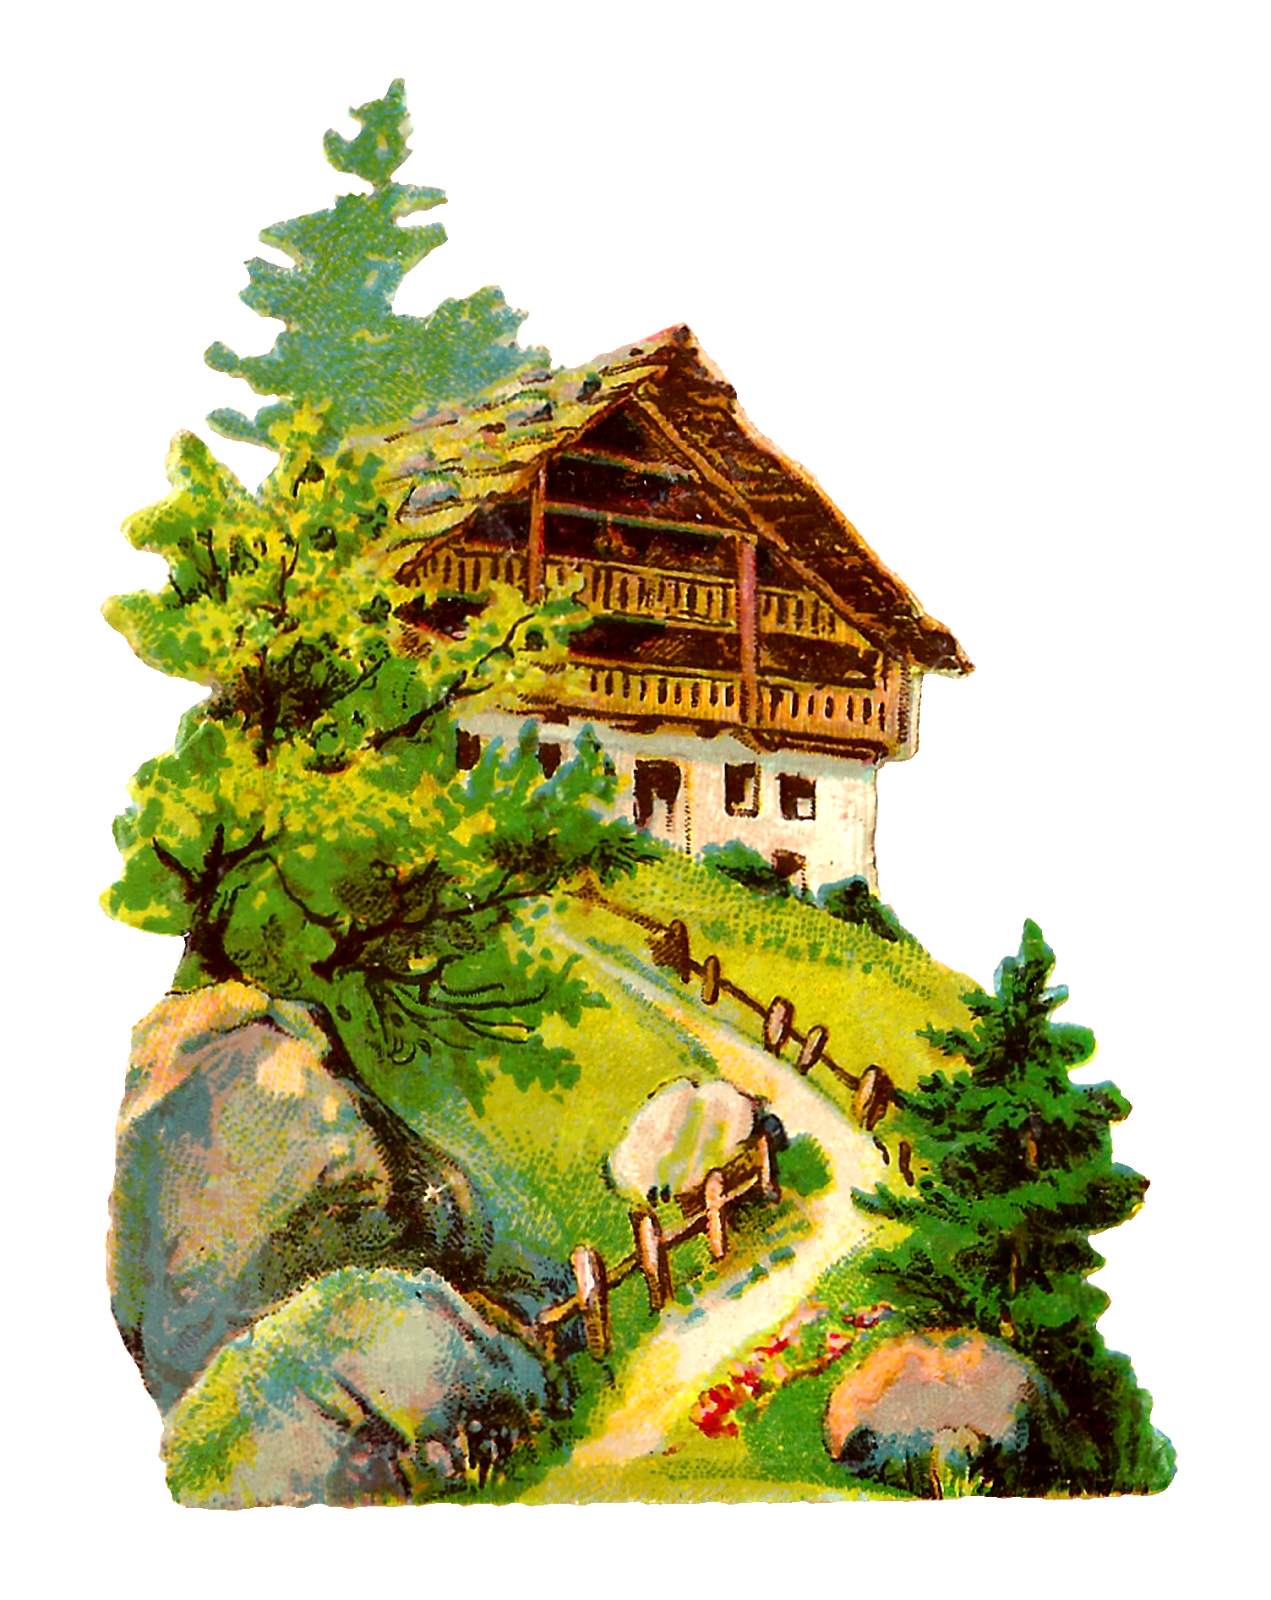 German house clipart picture royalty free stock Antique Images: German Vintage Architecture Clip Art Illustrations ... picture royalty free stock